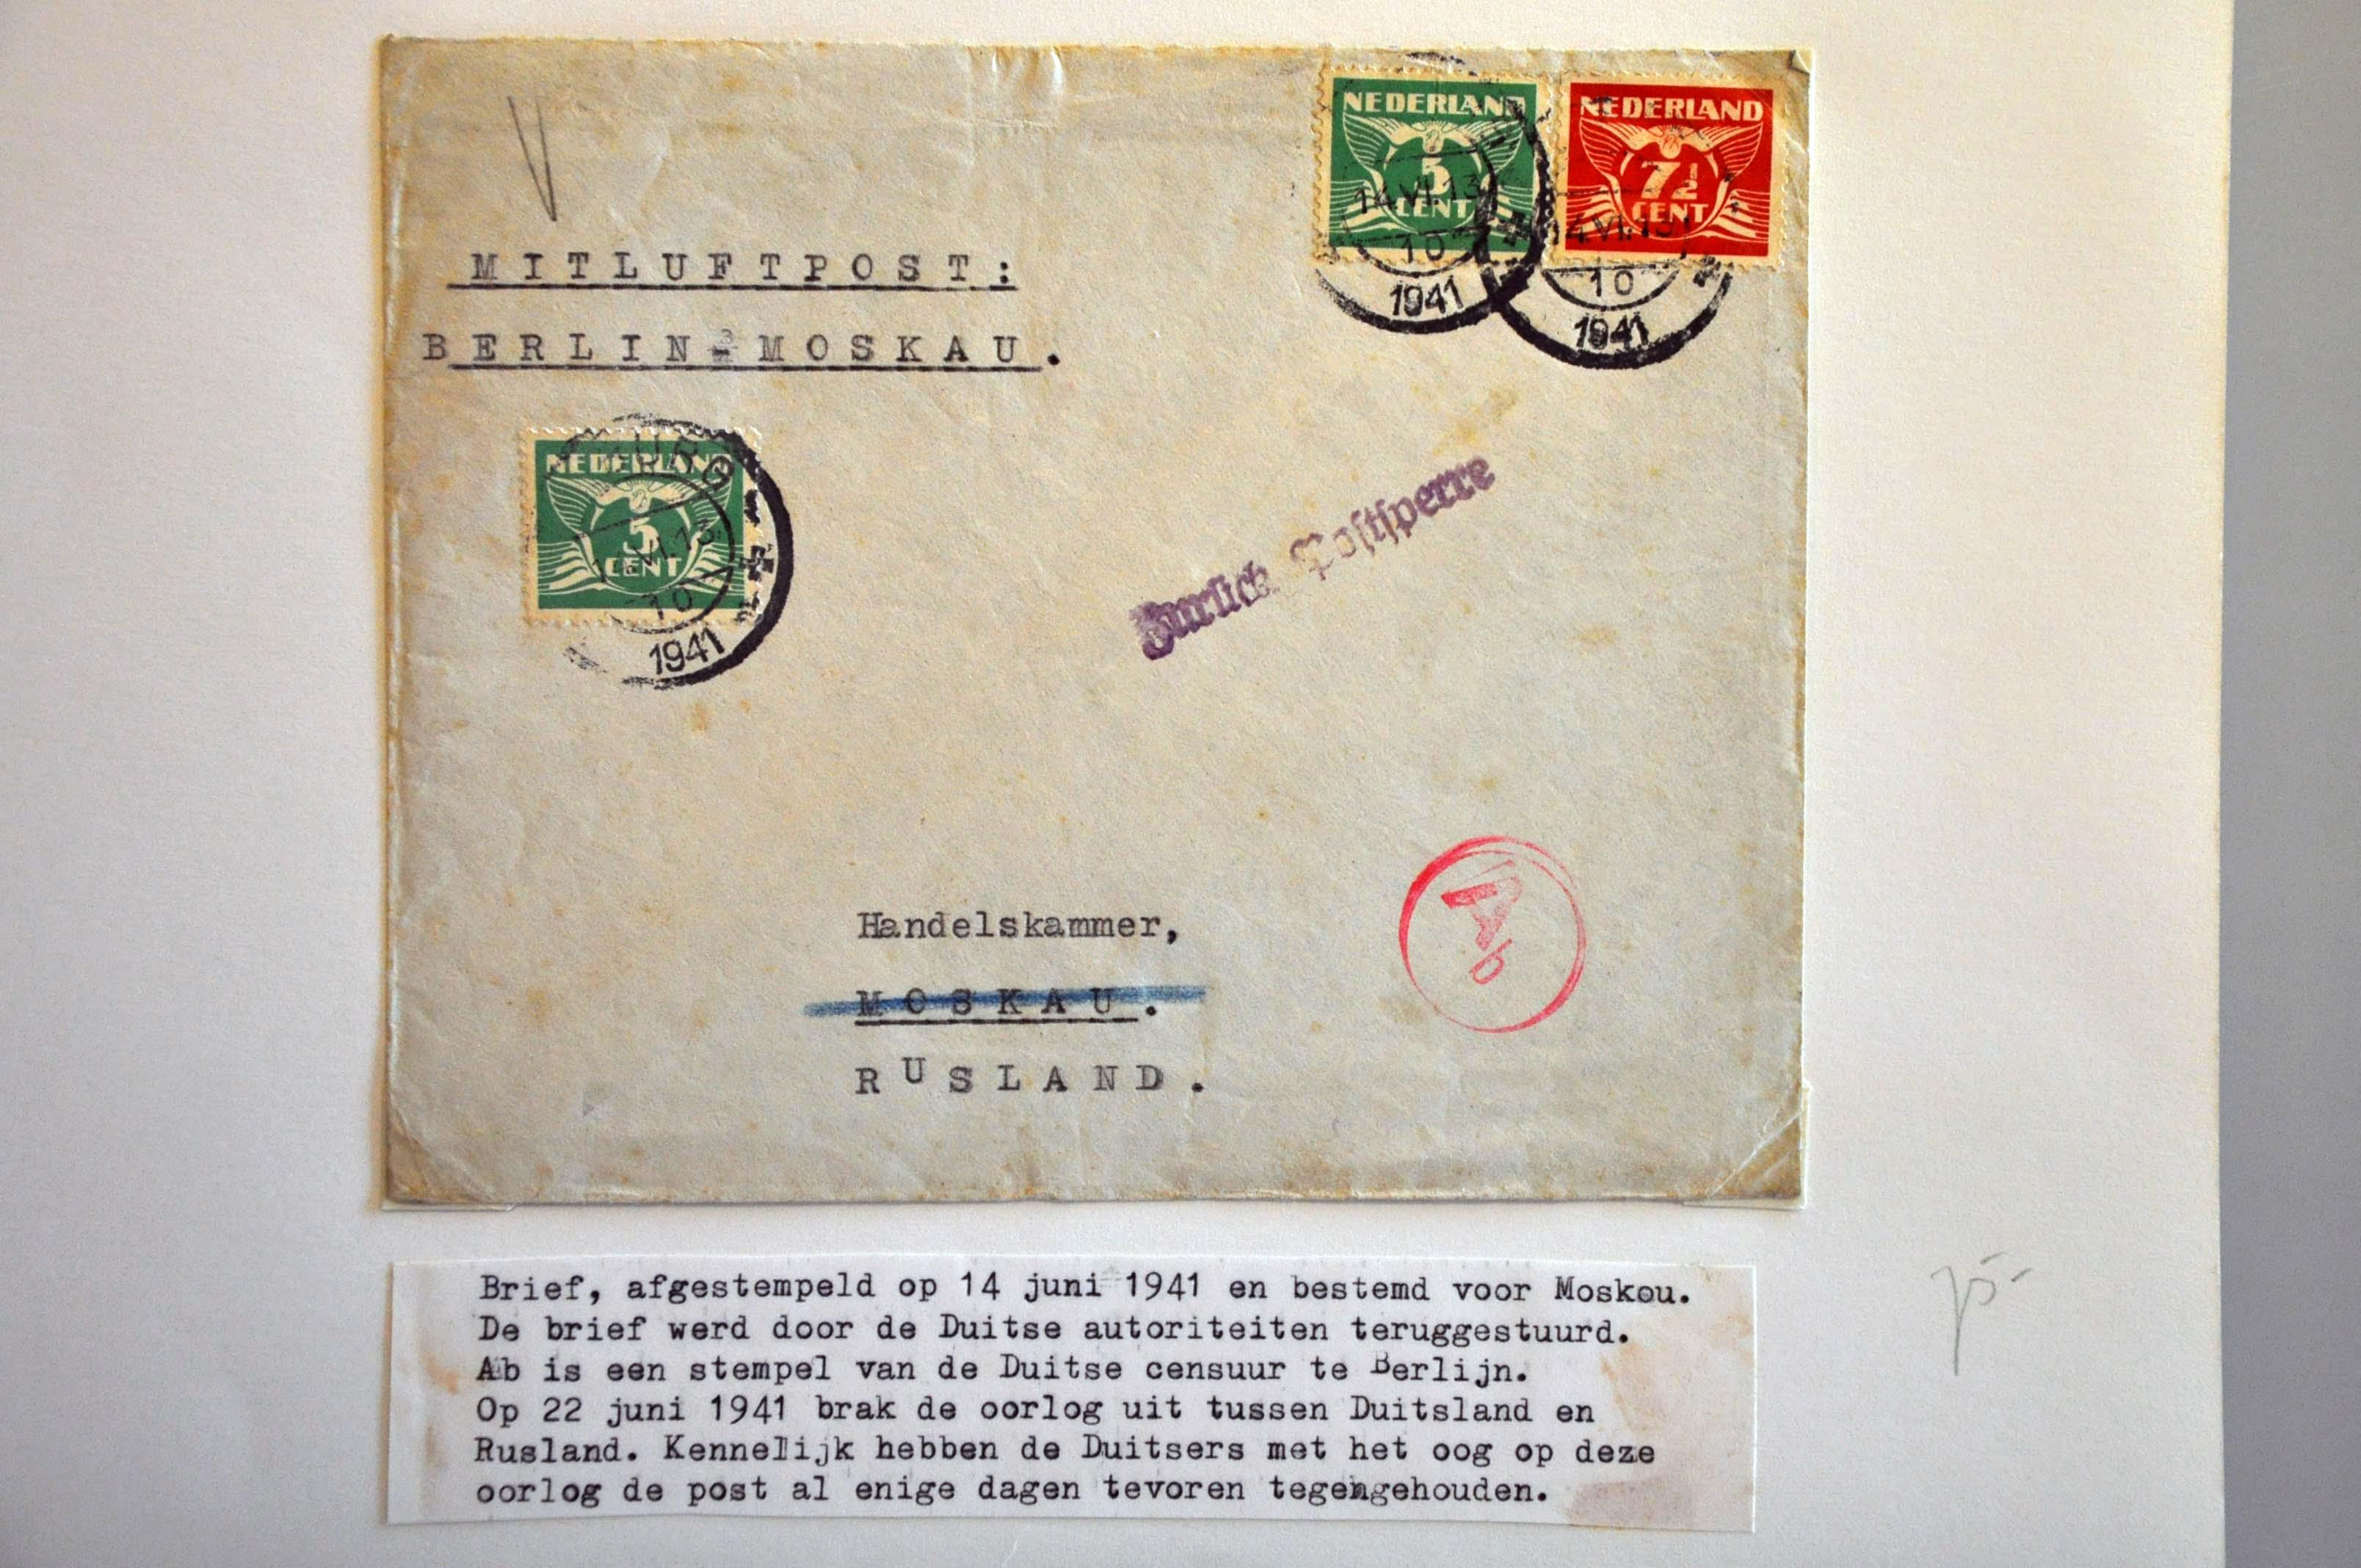 Stempel Herstellen Stamp Auction Topics And Miscellaneous World War Ii Auction